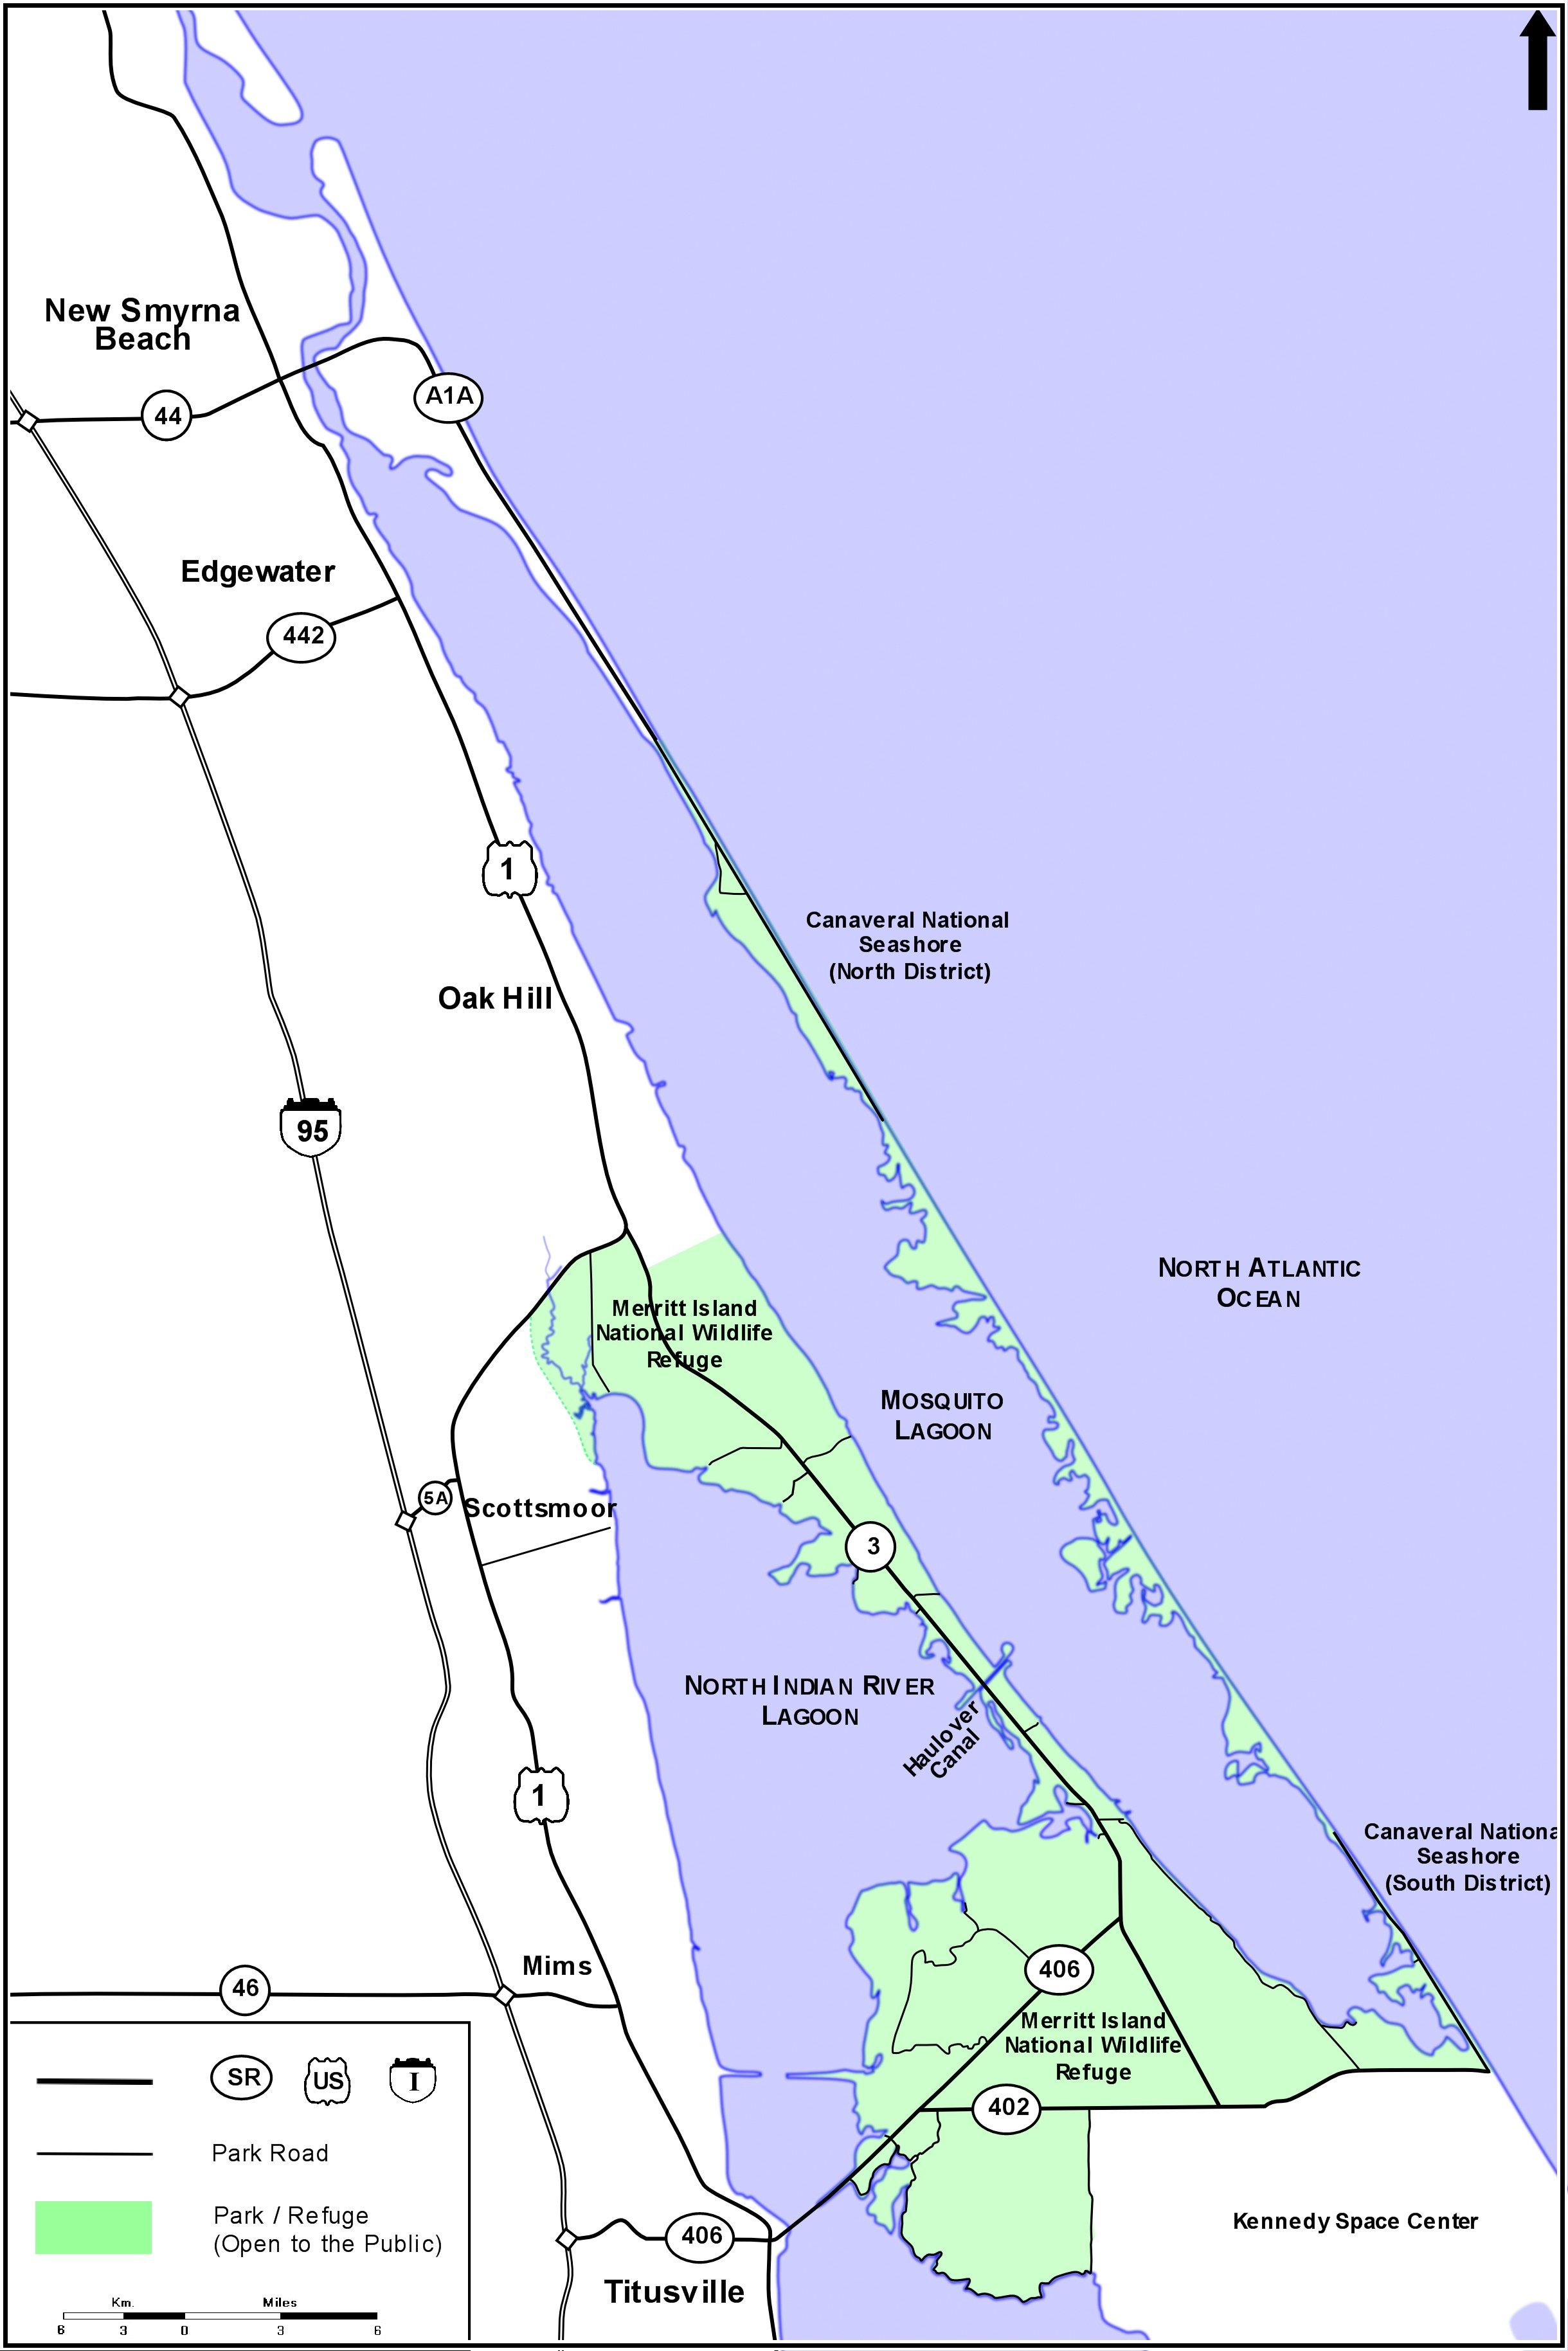 Mosquito lagoon and north indian river lagoon florida for New smyrna beach fishing spots